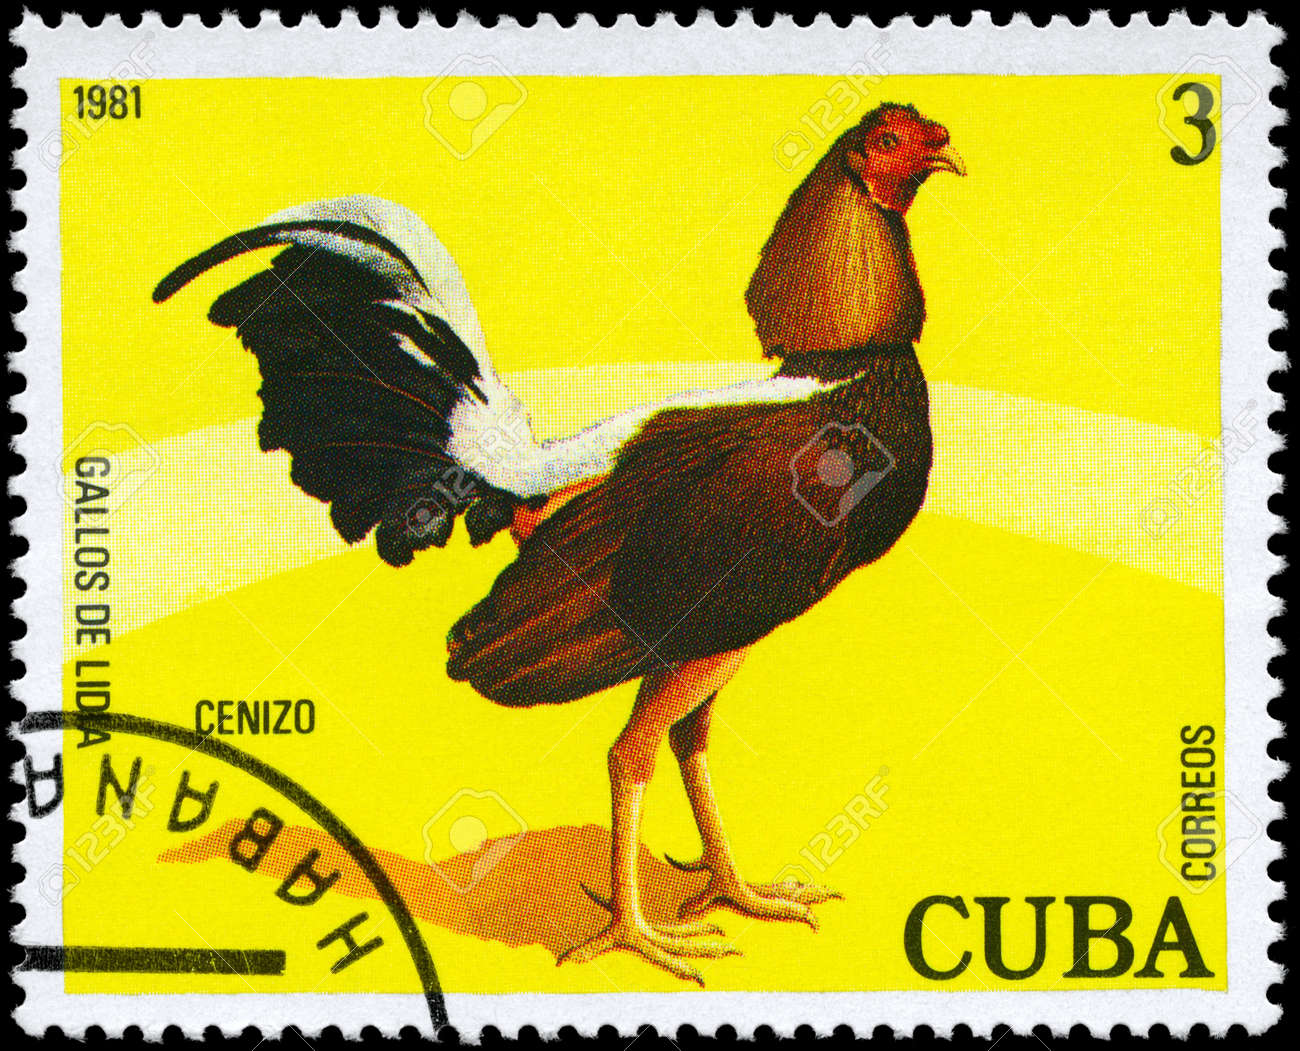 CUBA - CIRCA 1981: A Stamp shows image of a Rooster with the designation